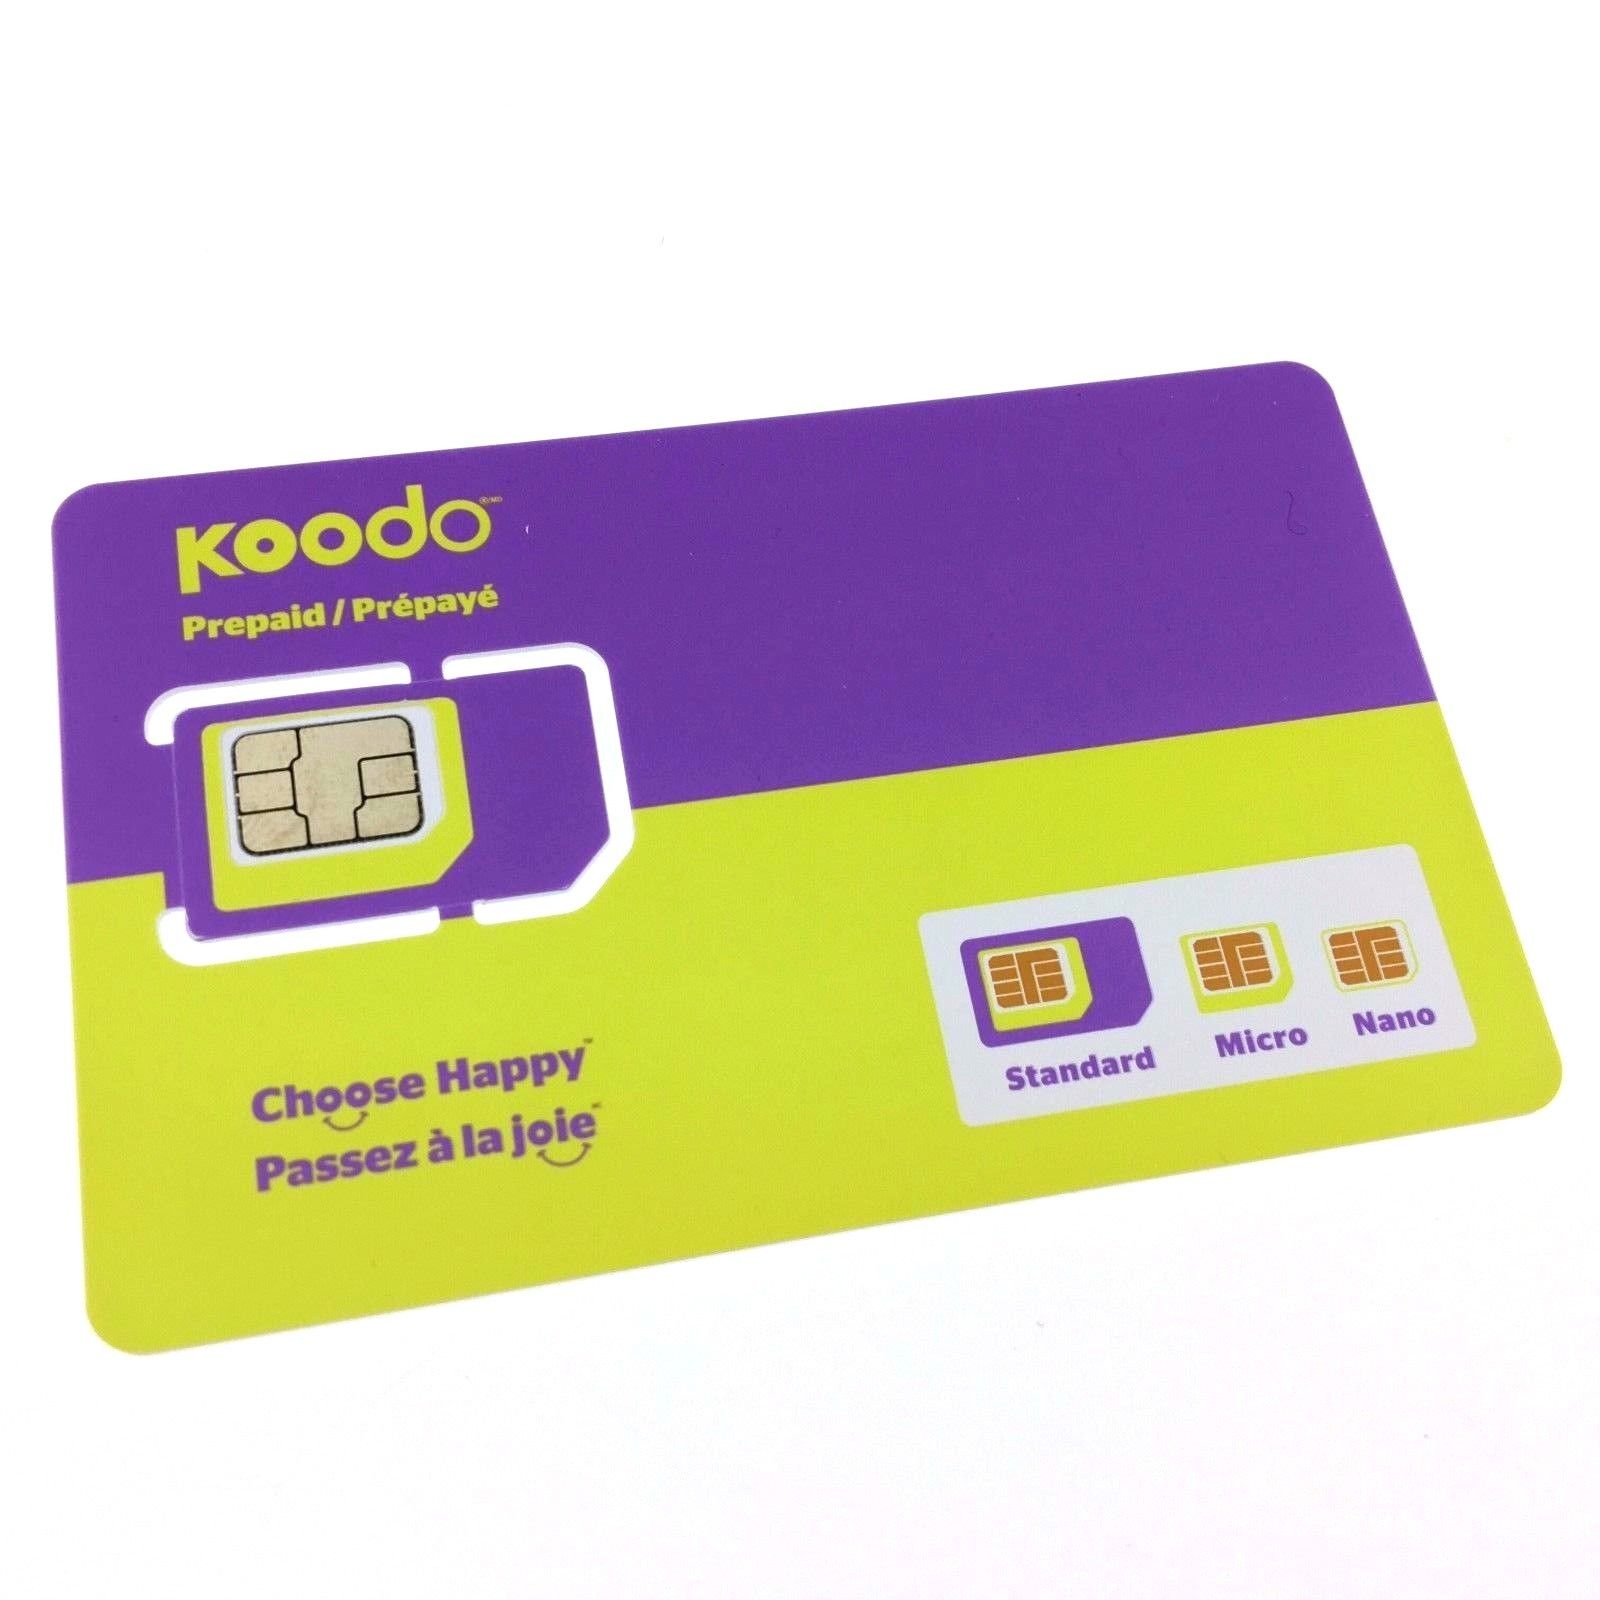 LIVEDITOR Koodo Multi Sim Card (Nano + Micro + Regular) $15 AIR TIME CREDIT included - image 1 de 2